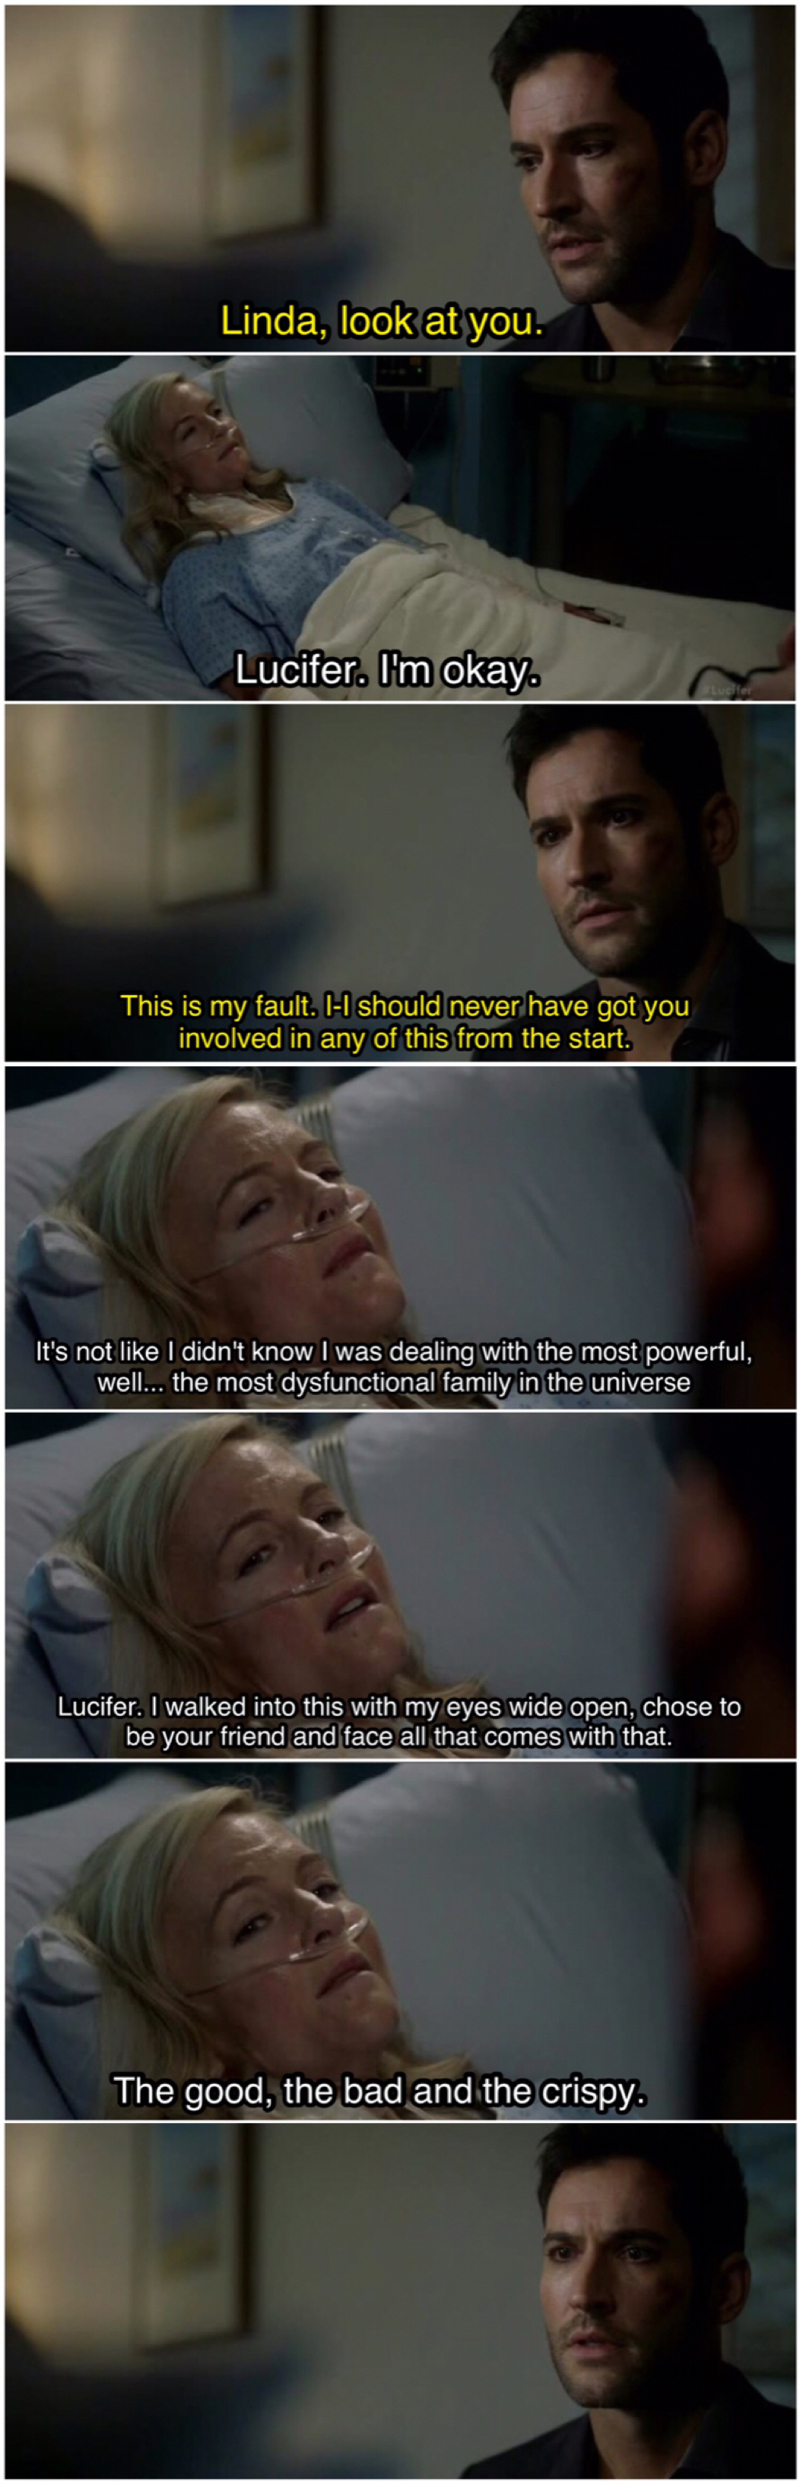 My poor Linda 😭 This scene 💜